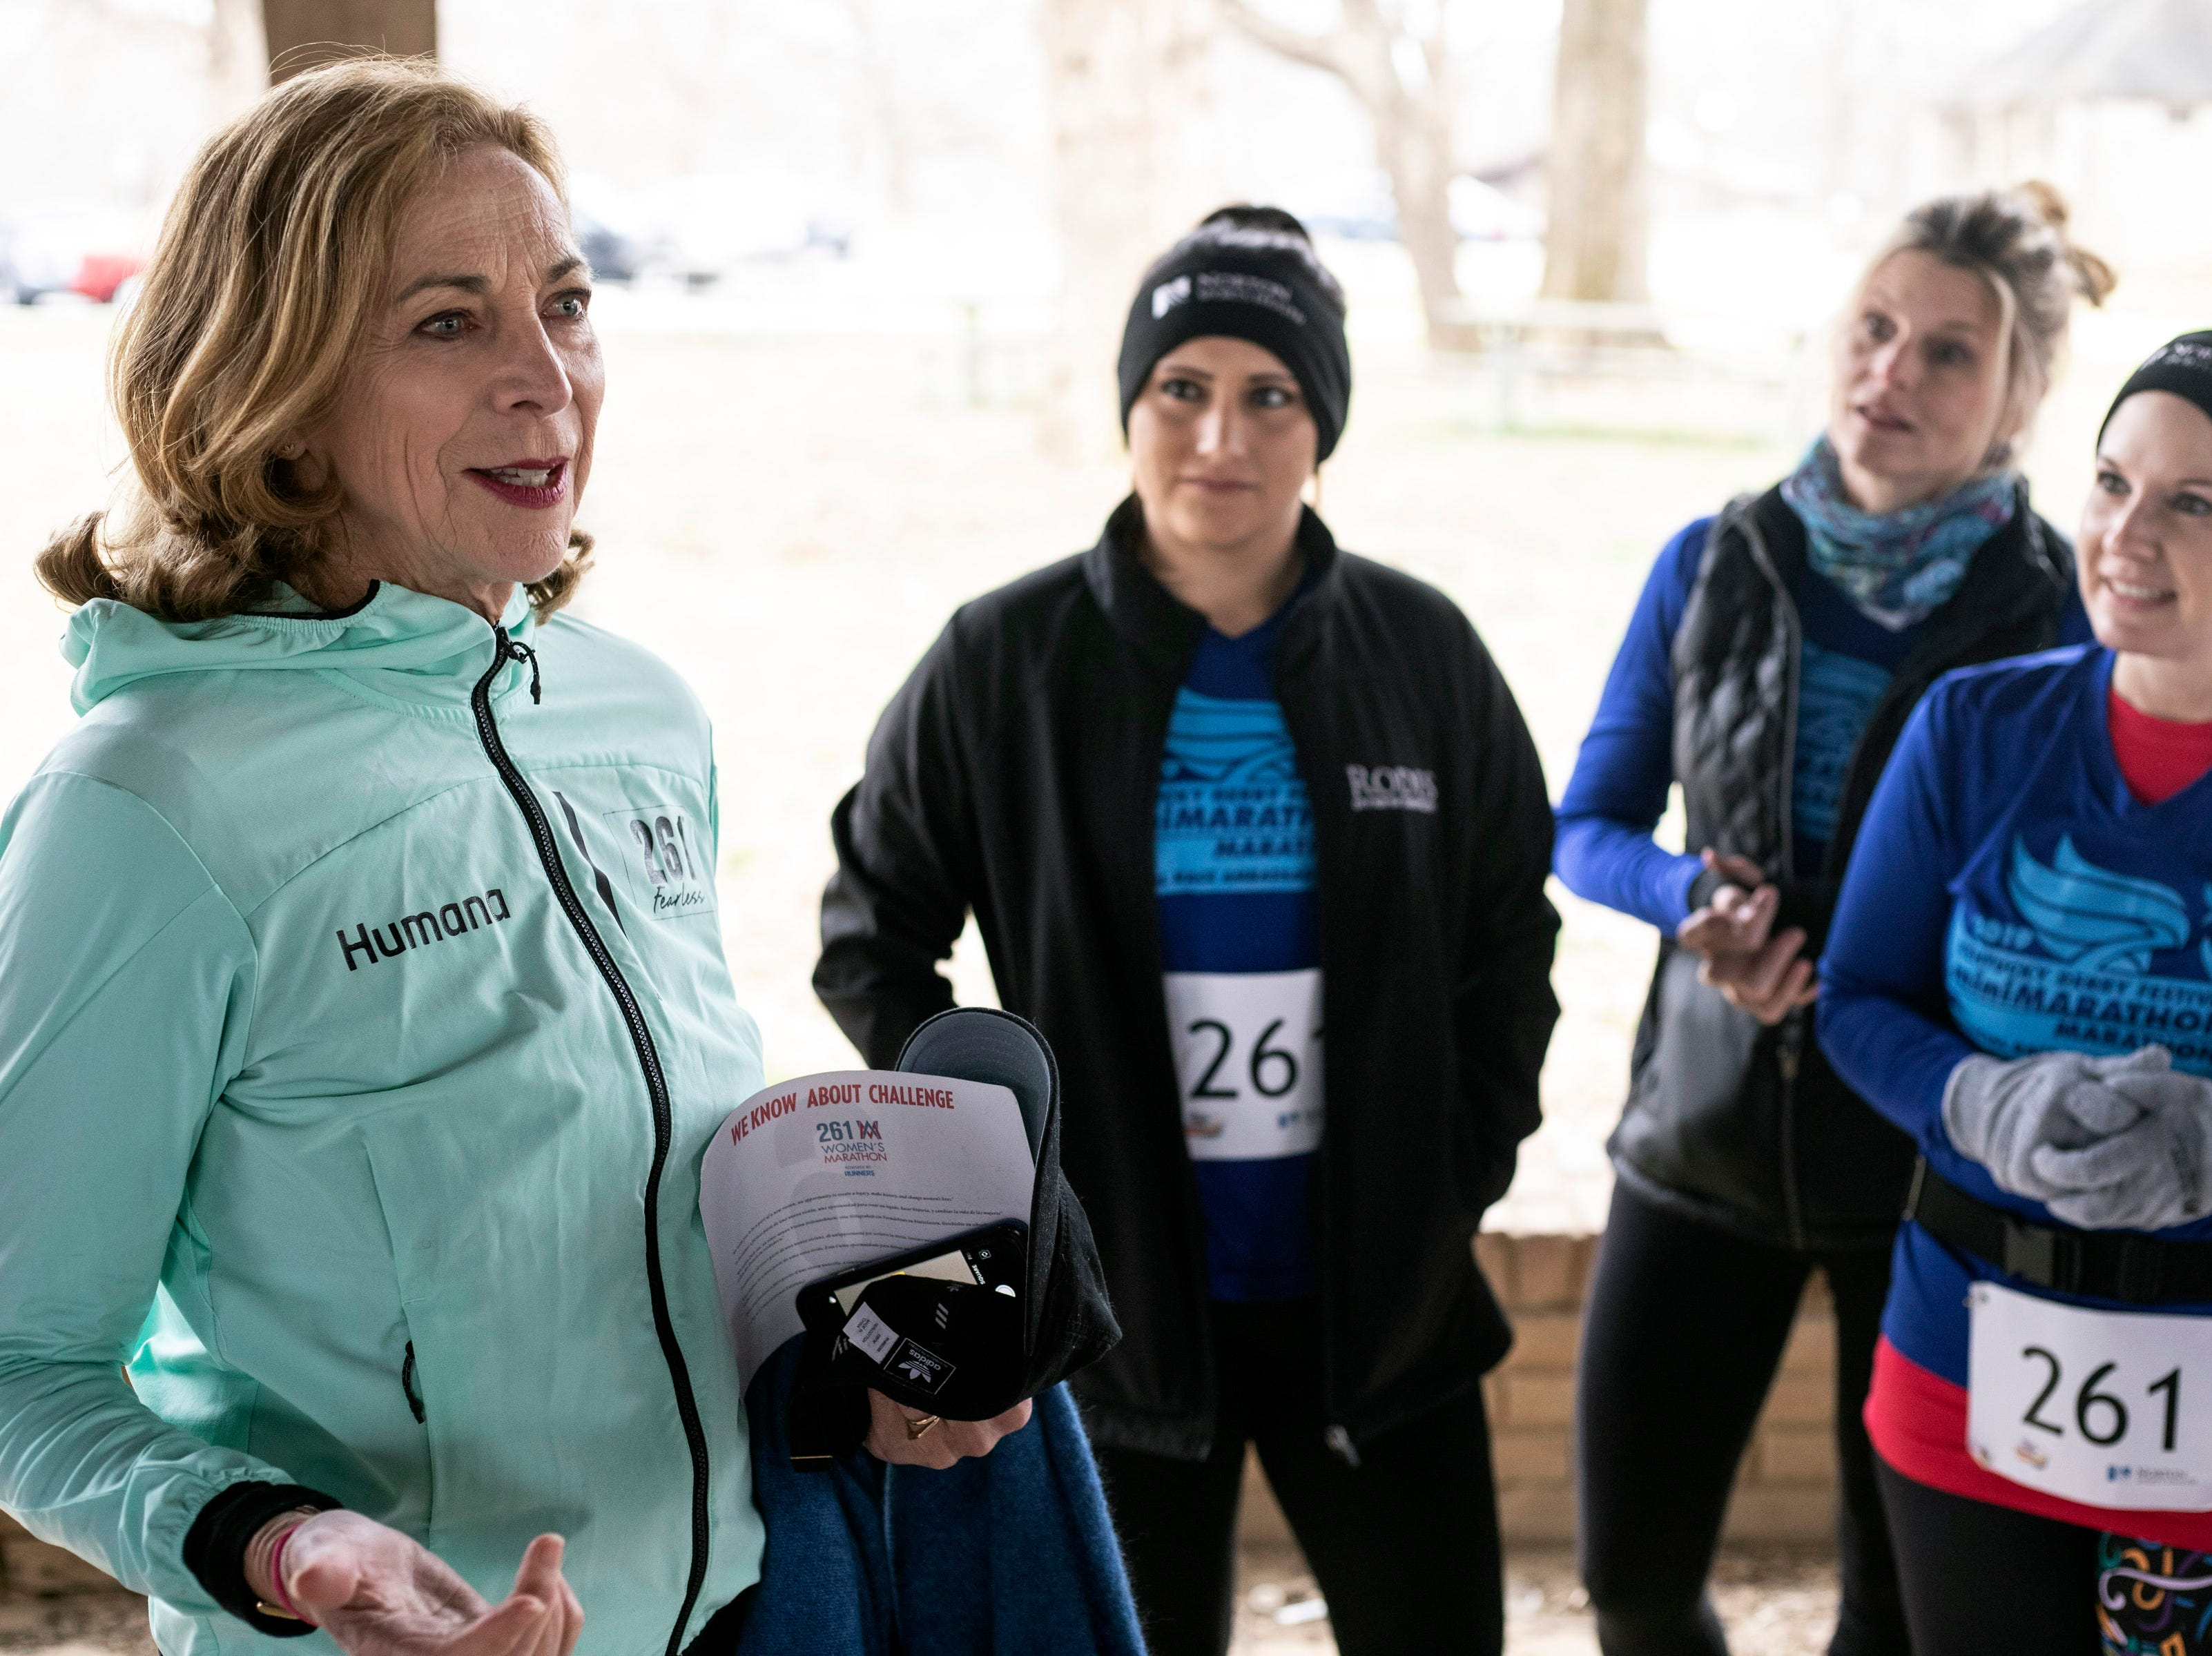 Kathrine Switzer, who in 1967 became the first woman to run the Boston Marathon as a numbered entrant, met with fellow runners near Hogan's Fountain in Cherokee Park on Thursday afternoon.